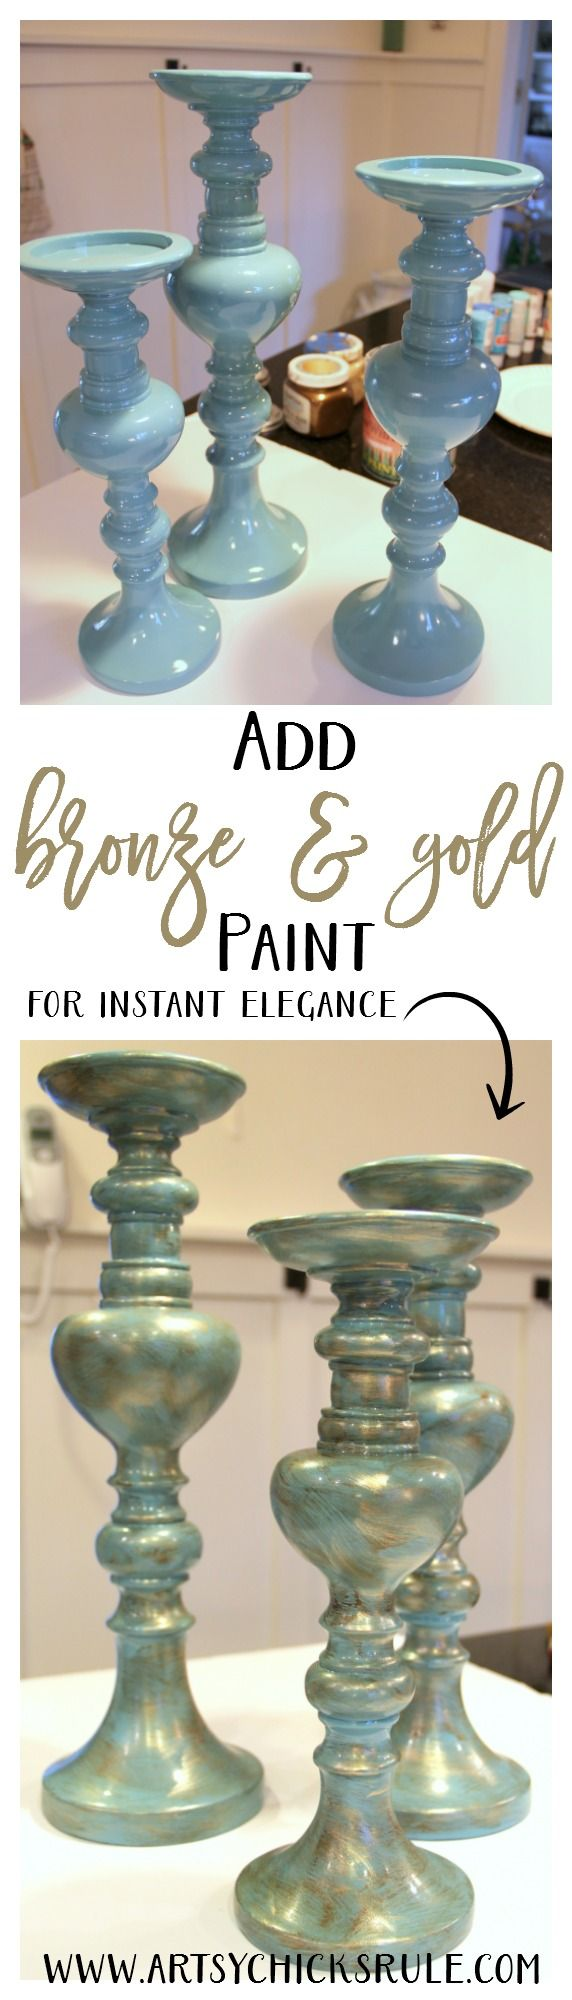 Painted Candlesticks - Super easy makeover - artsychicksrule